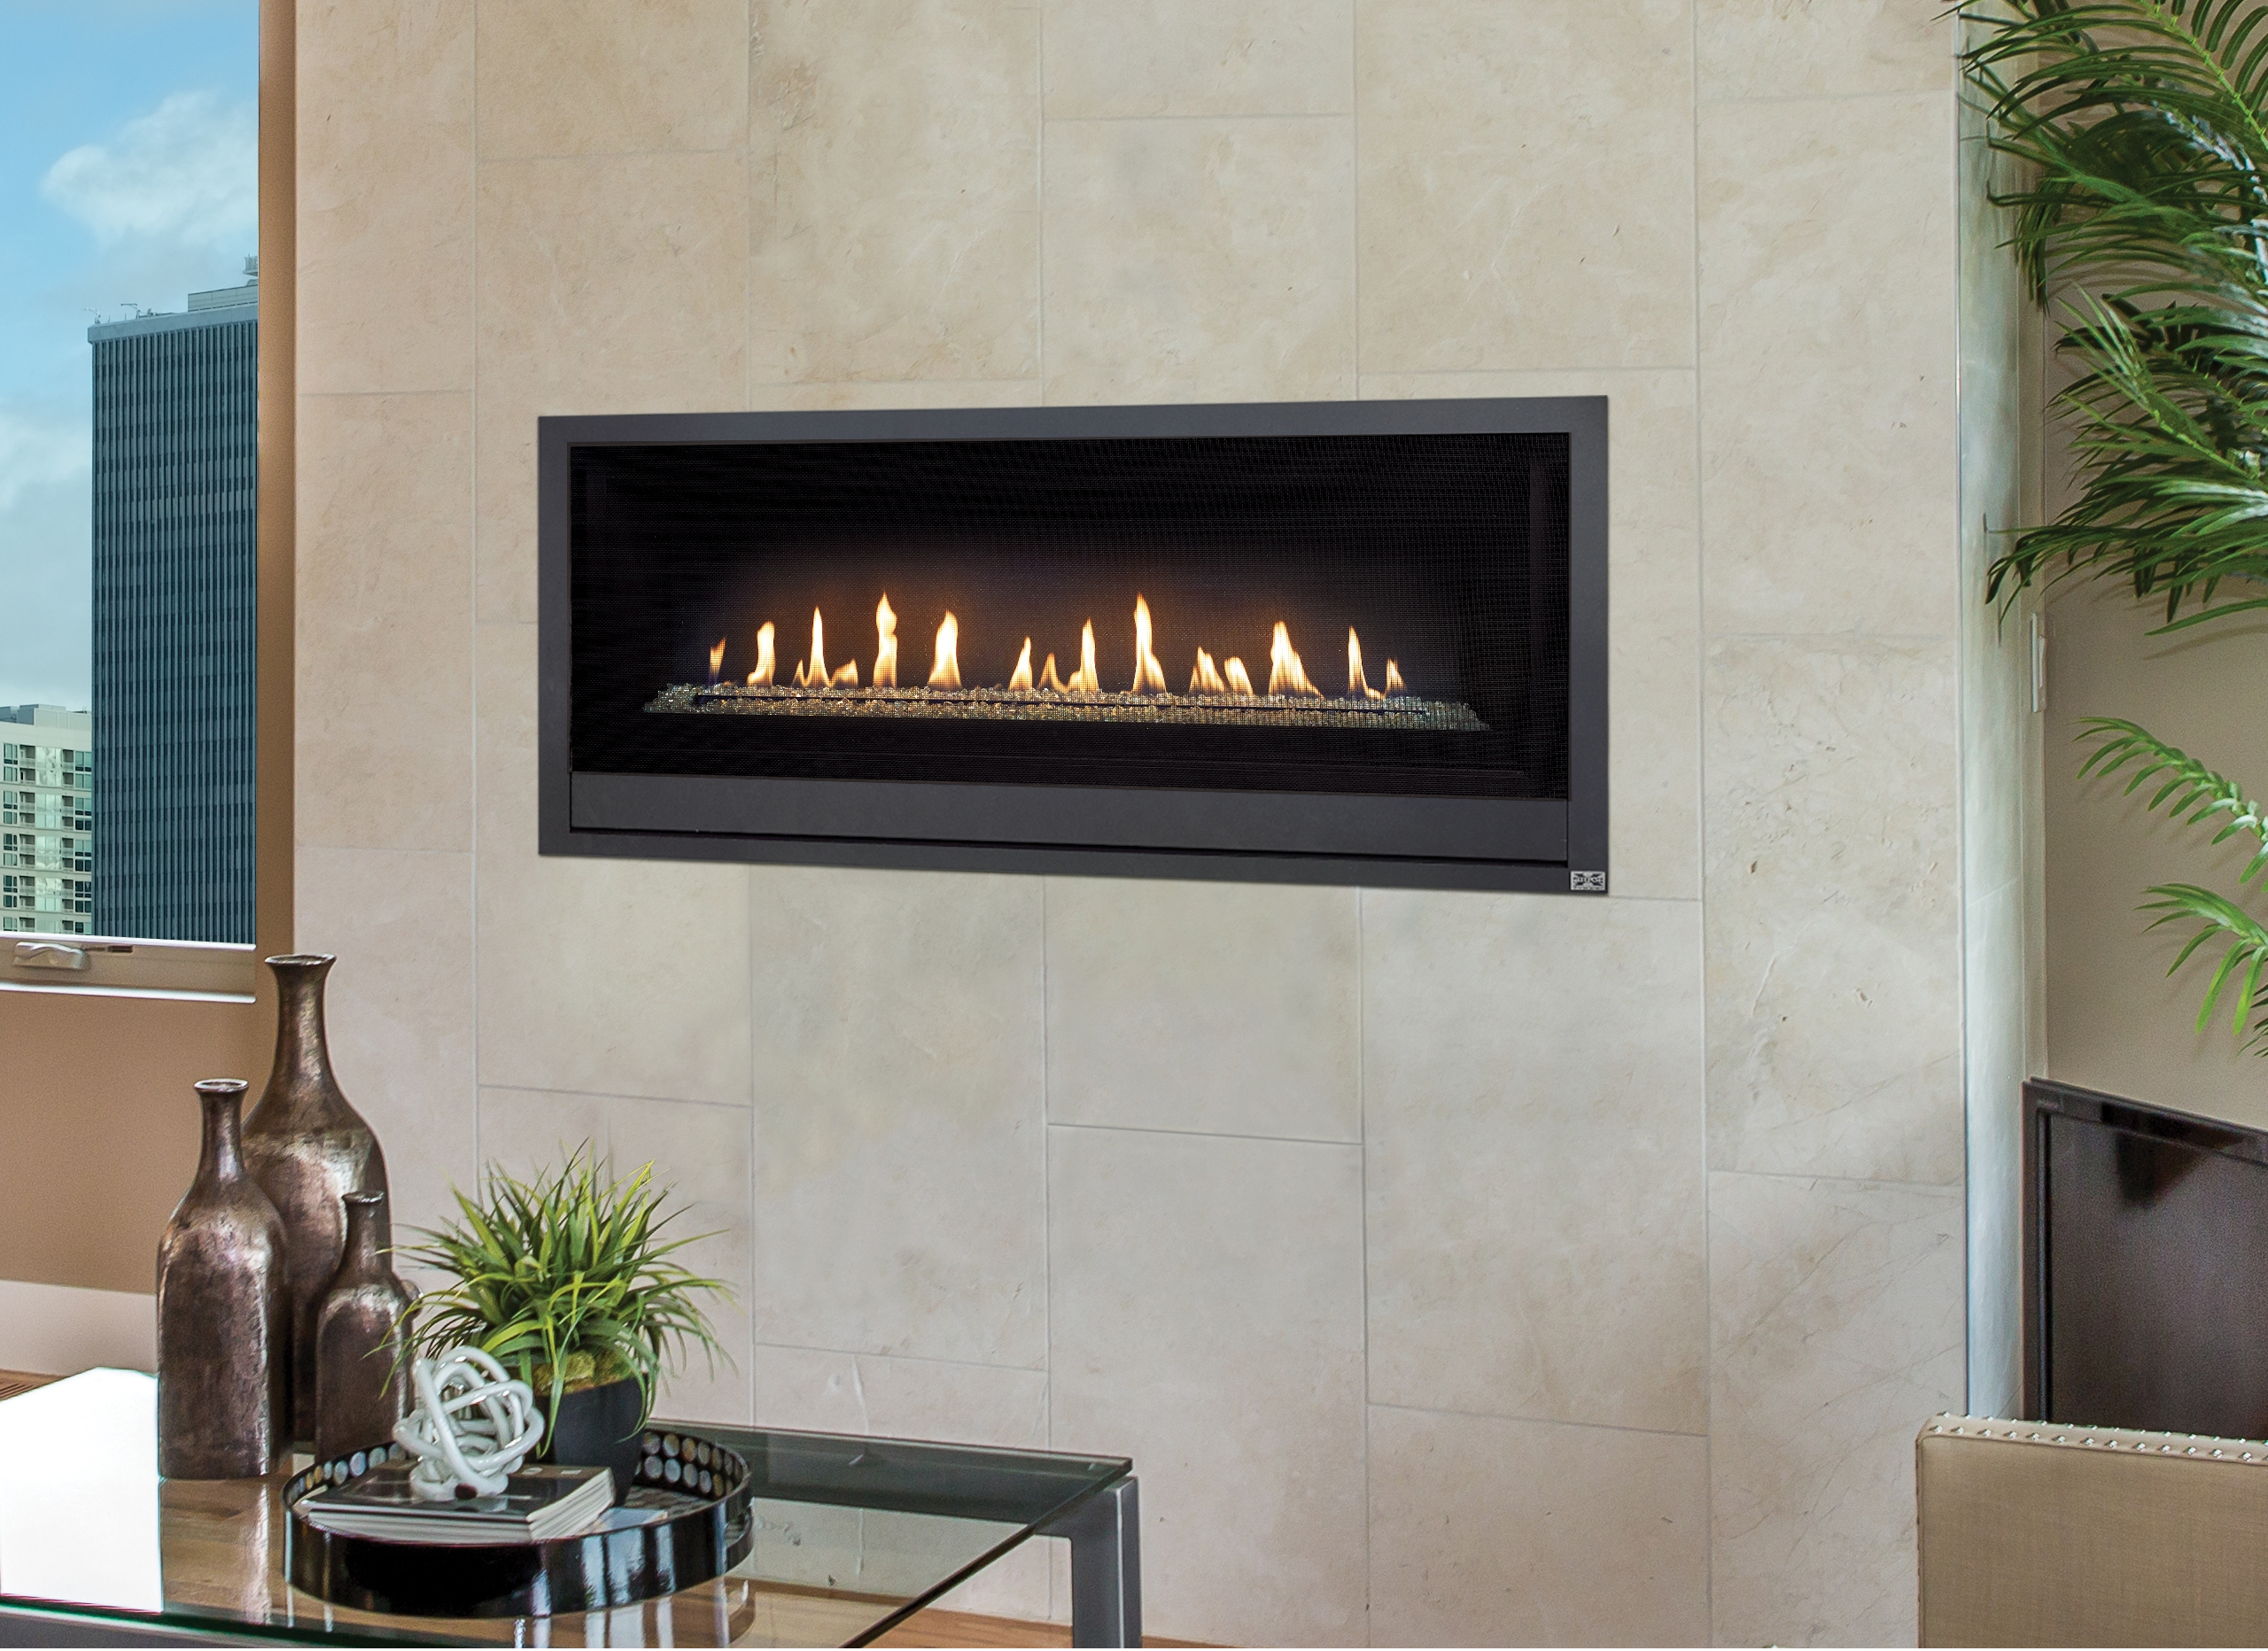 this is a linked image of a FireplaceX ProBuilder 42 gas fireplace to its product page under related products